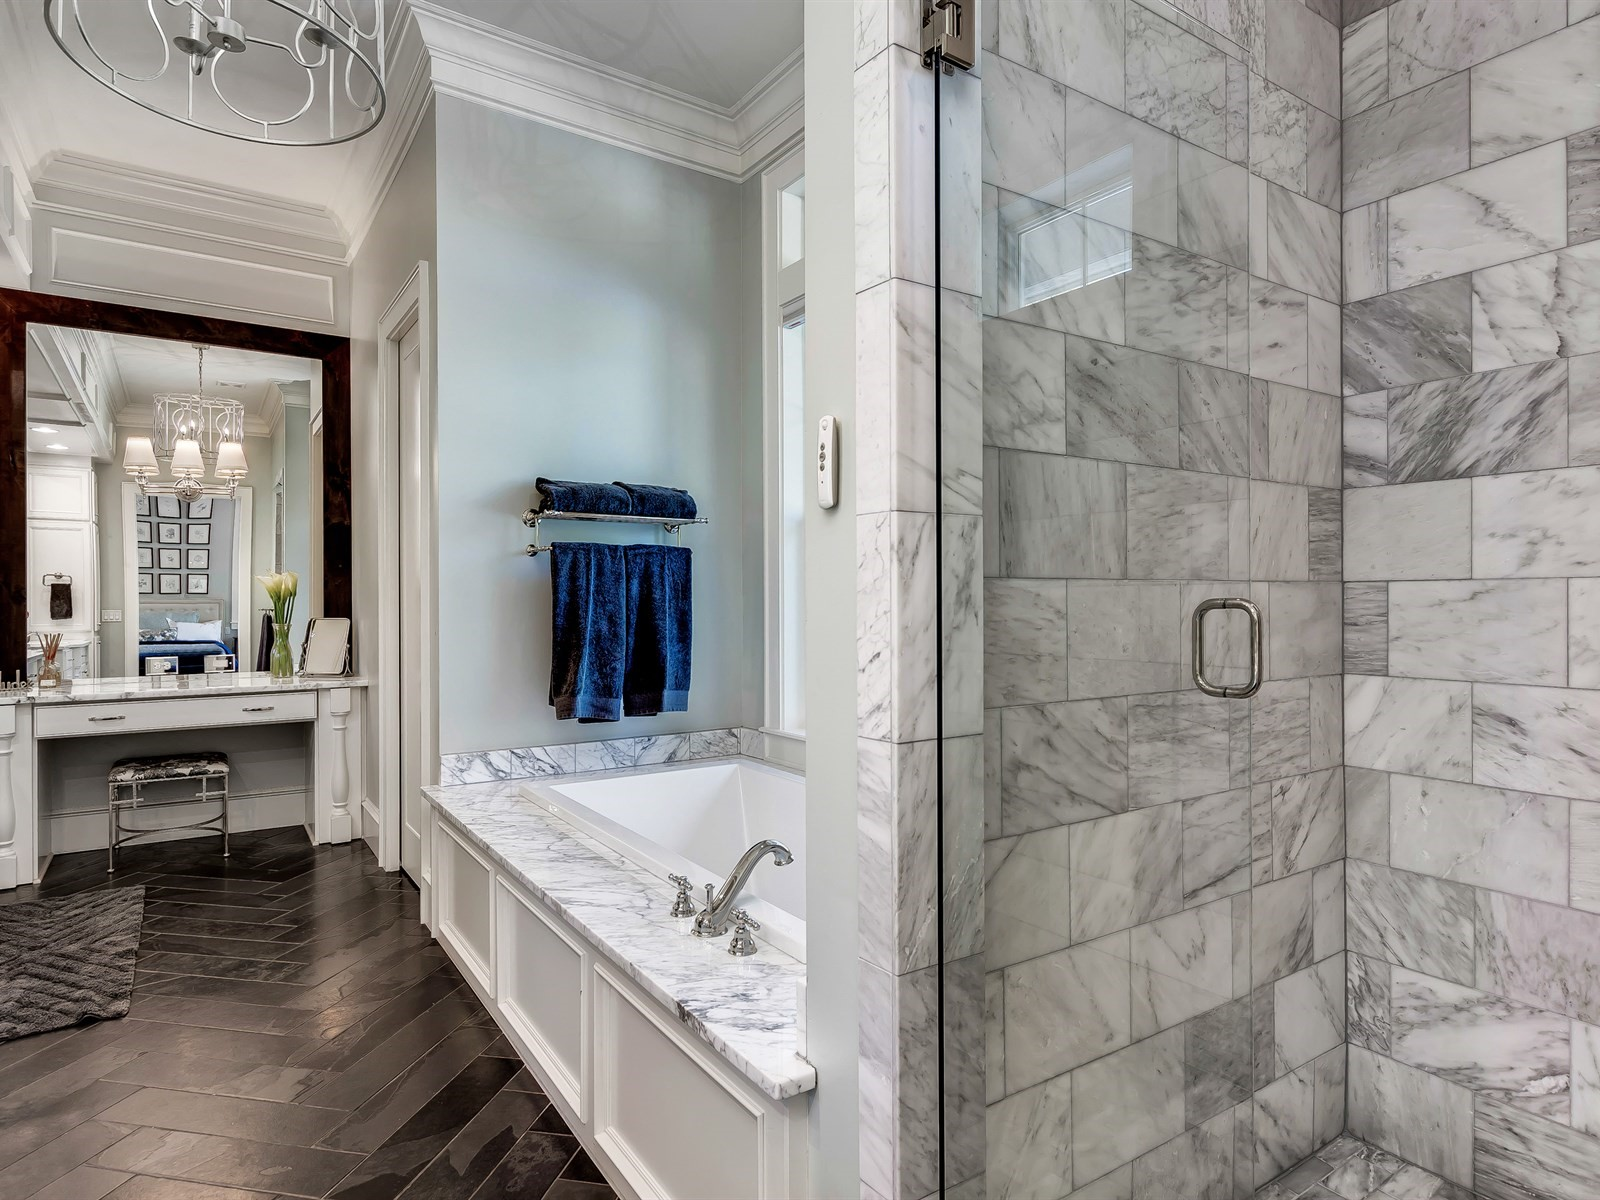 040_Master Bathroom .jpg